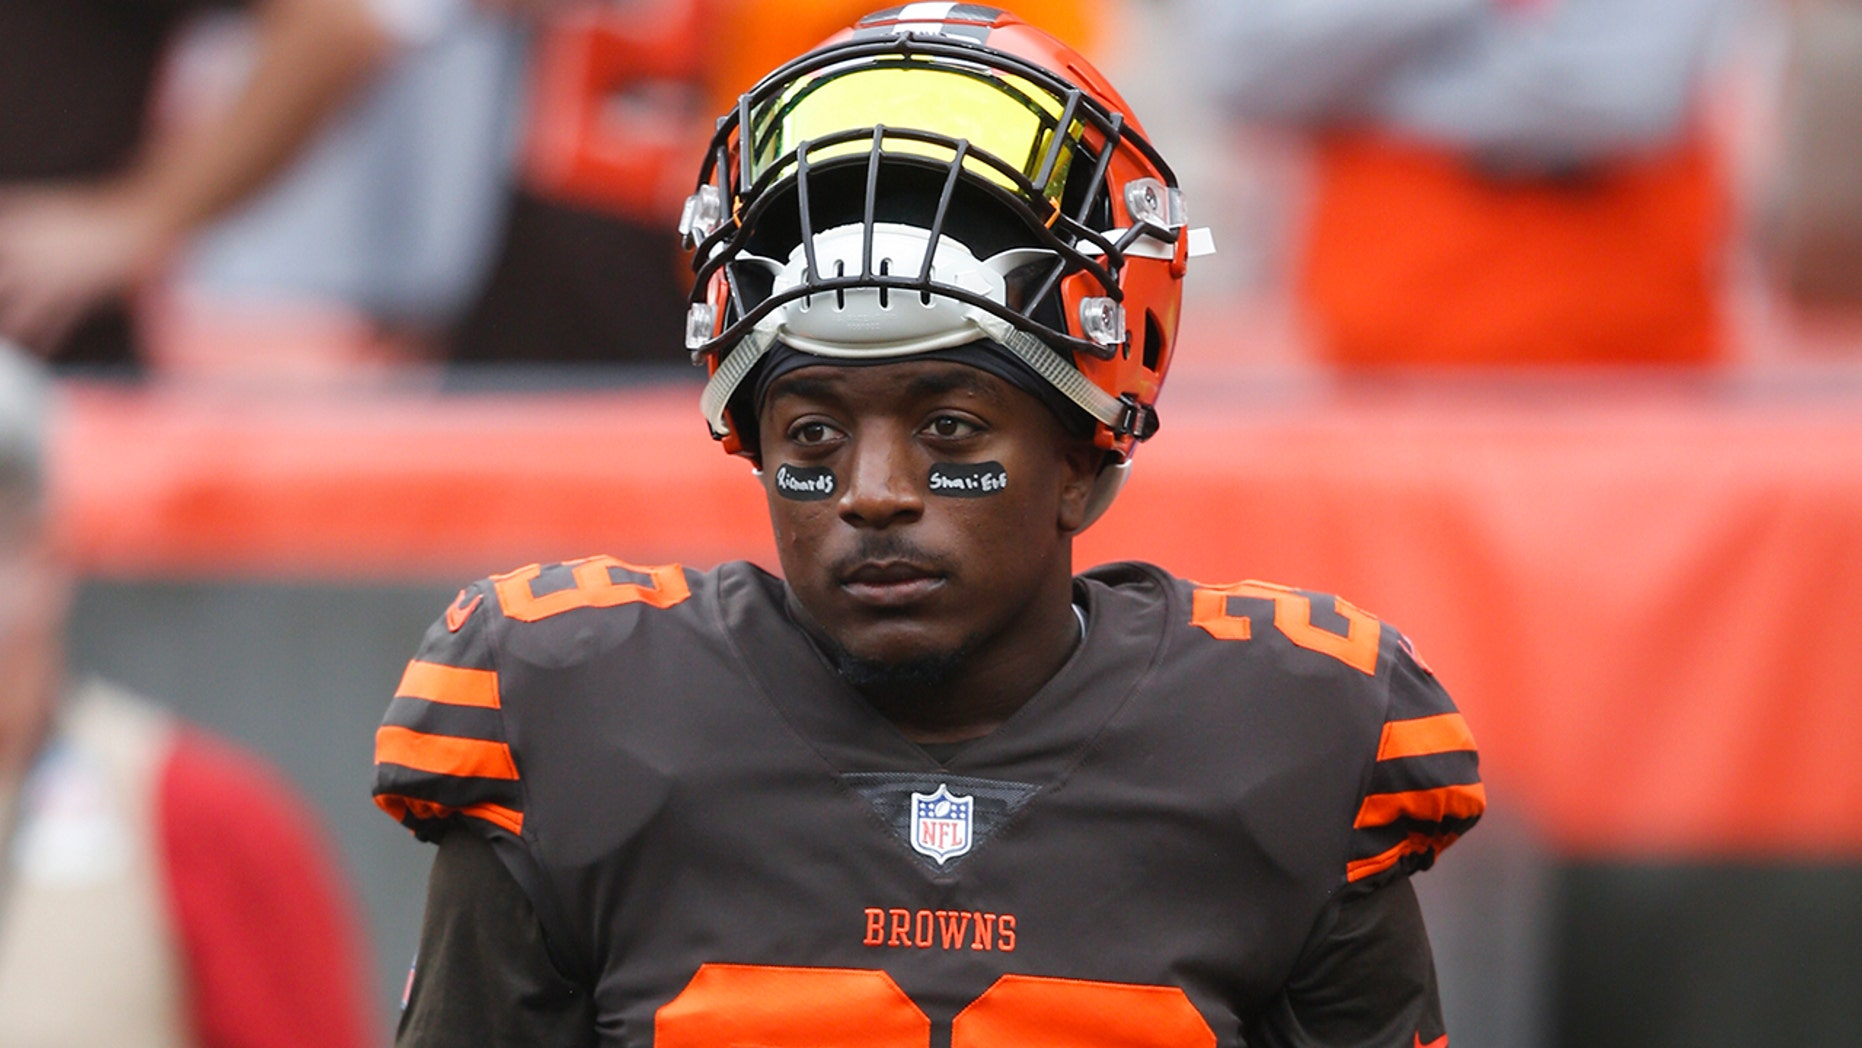 FILE - In this Oct. 7, 2018, file photo, Cleveland Browns running back Duke Johnson (29) warms up before an NFL football game against the Baltimore Ravens, in Cleveland. The Browns have traded disgruntled running back Duke Johnson, Thursday, Aug. 8, 2019, to the Houston Texans for an undisclosed 2020 draft pick. (AP Photo/Ron Schwane, File)